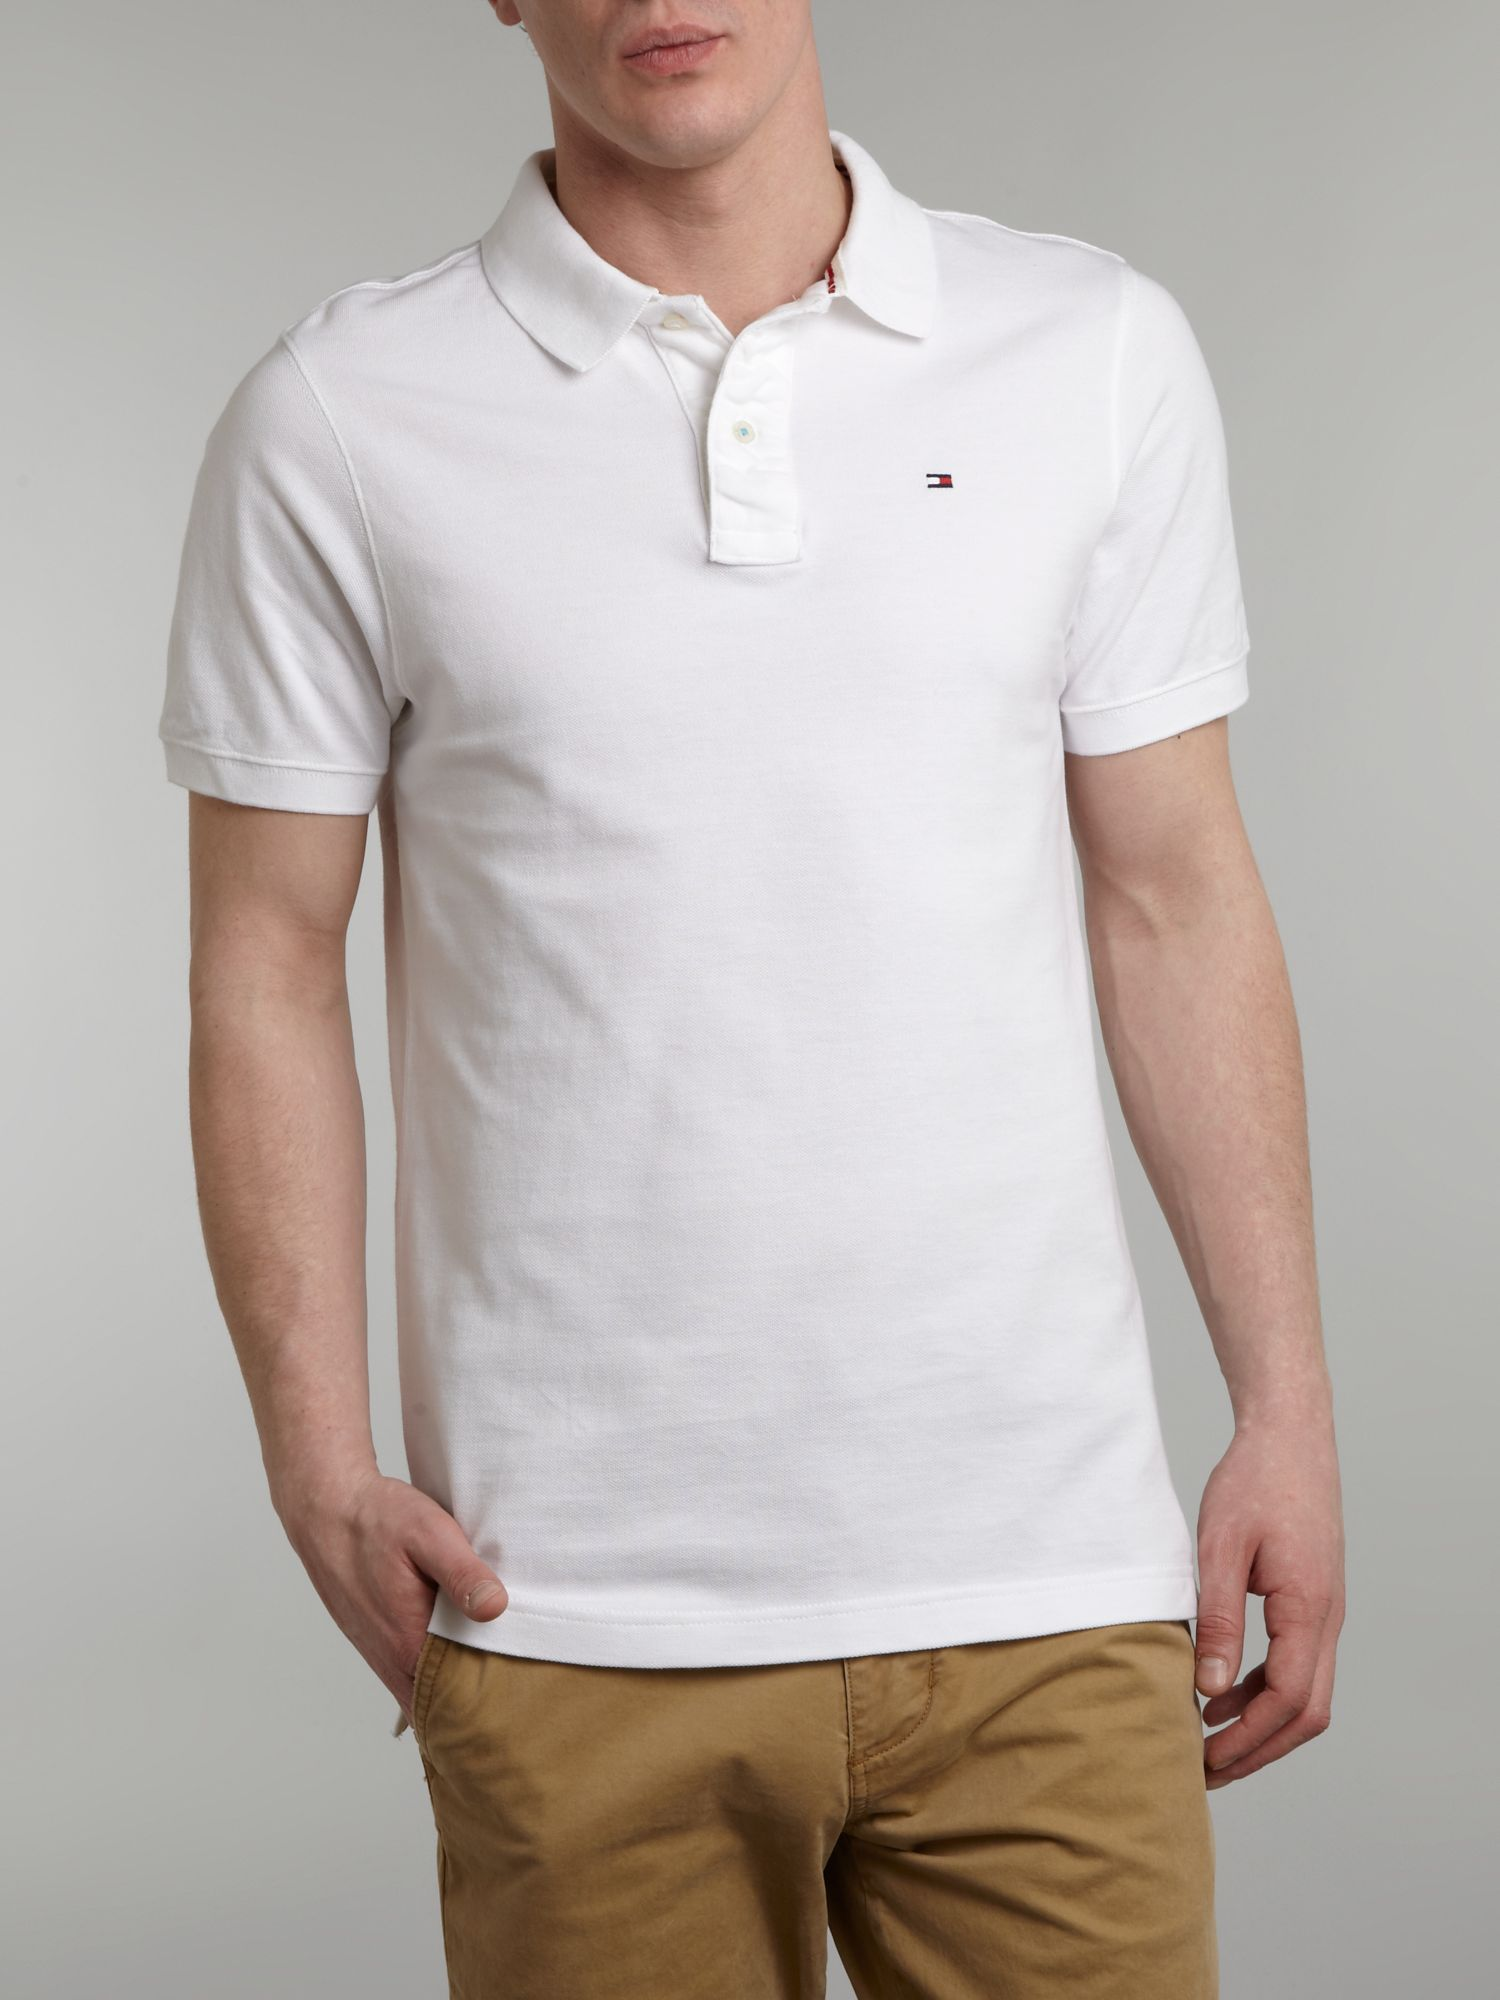 Basic pilot polo top